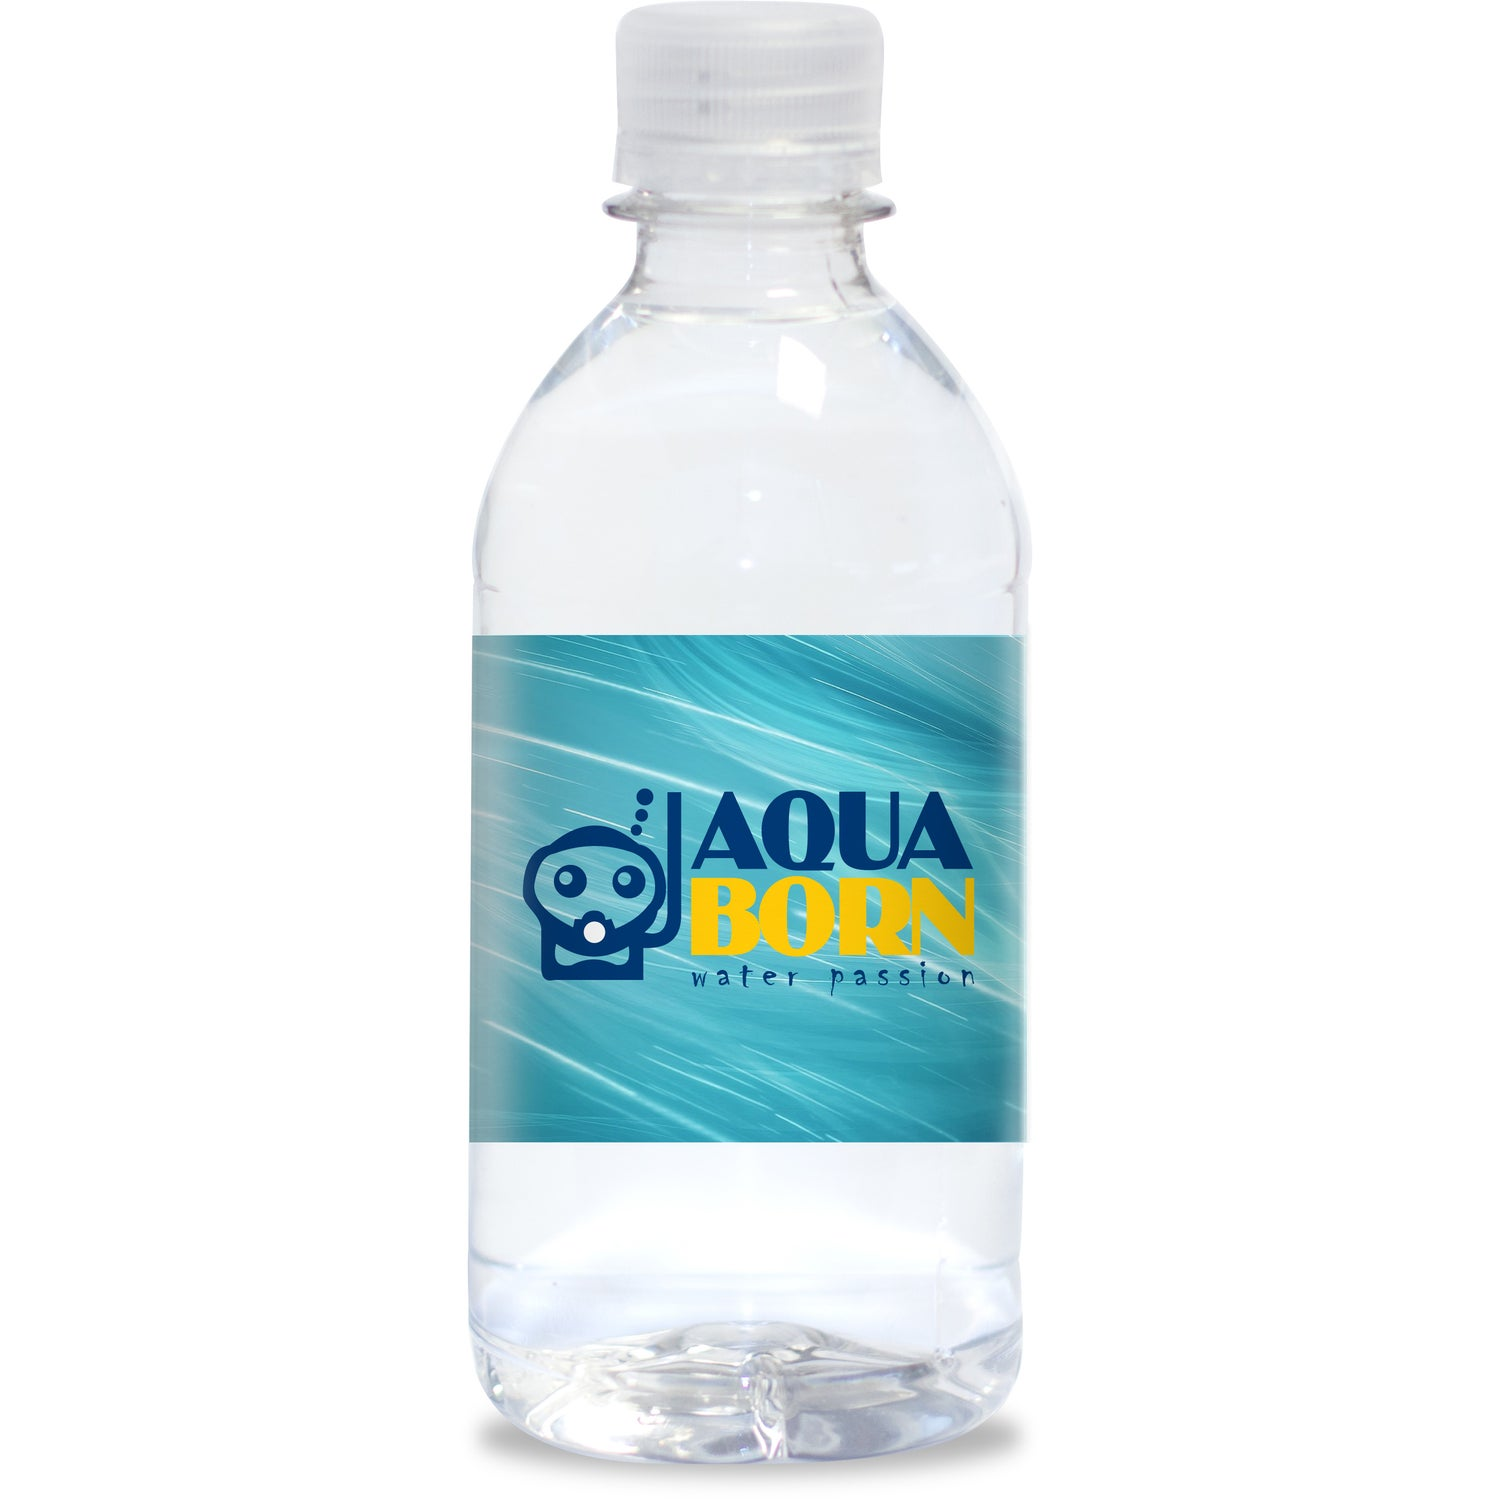 7c2aae5081 CLICK HERE to Order 12 Oz. Aquatek Bottled Water Printed with Your Logo for  $1.27 Ea.